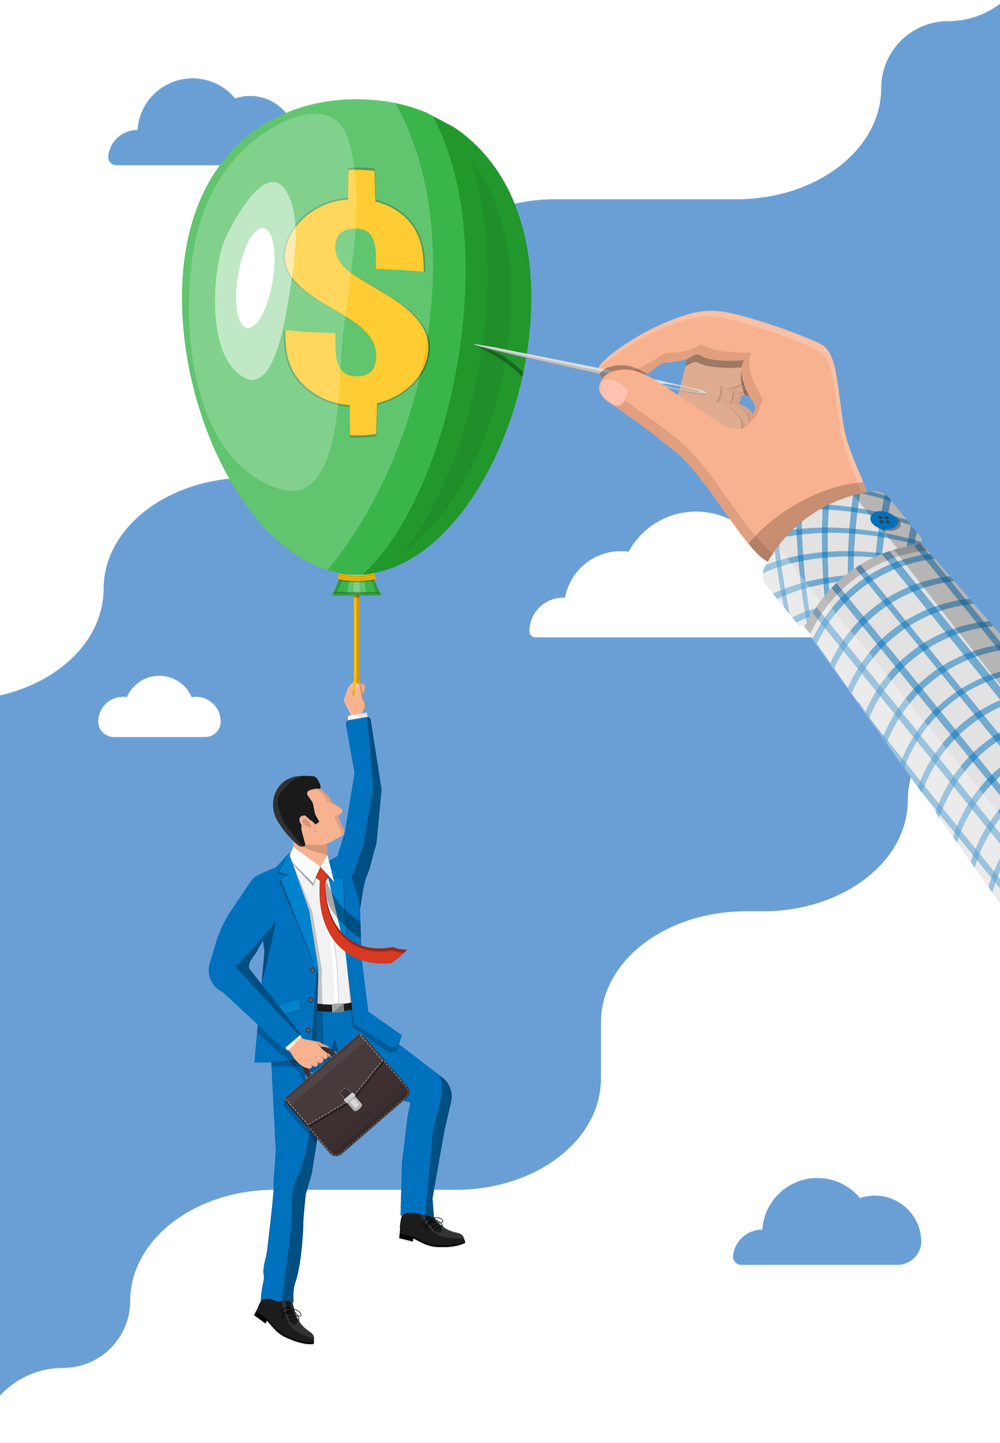 Illustration of businessman with rising income shown by him grasping a floating balloon about to be popped by a needle (due to lifestyle creep debts)